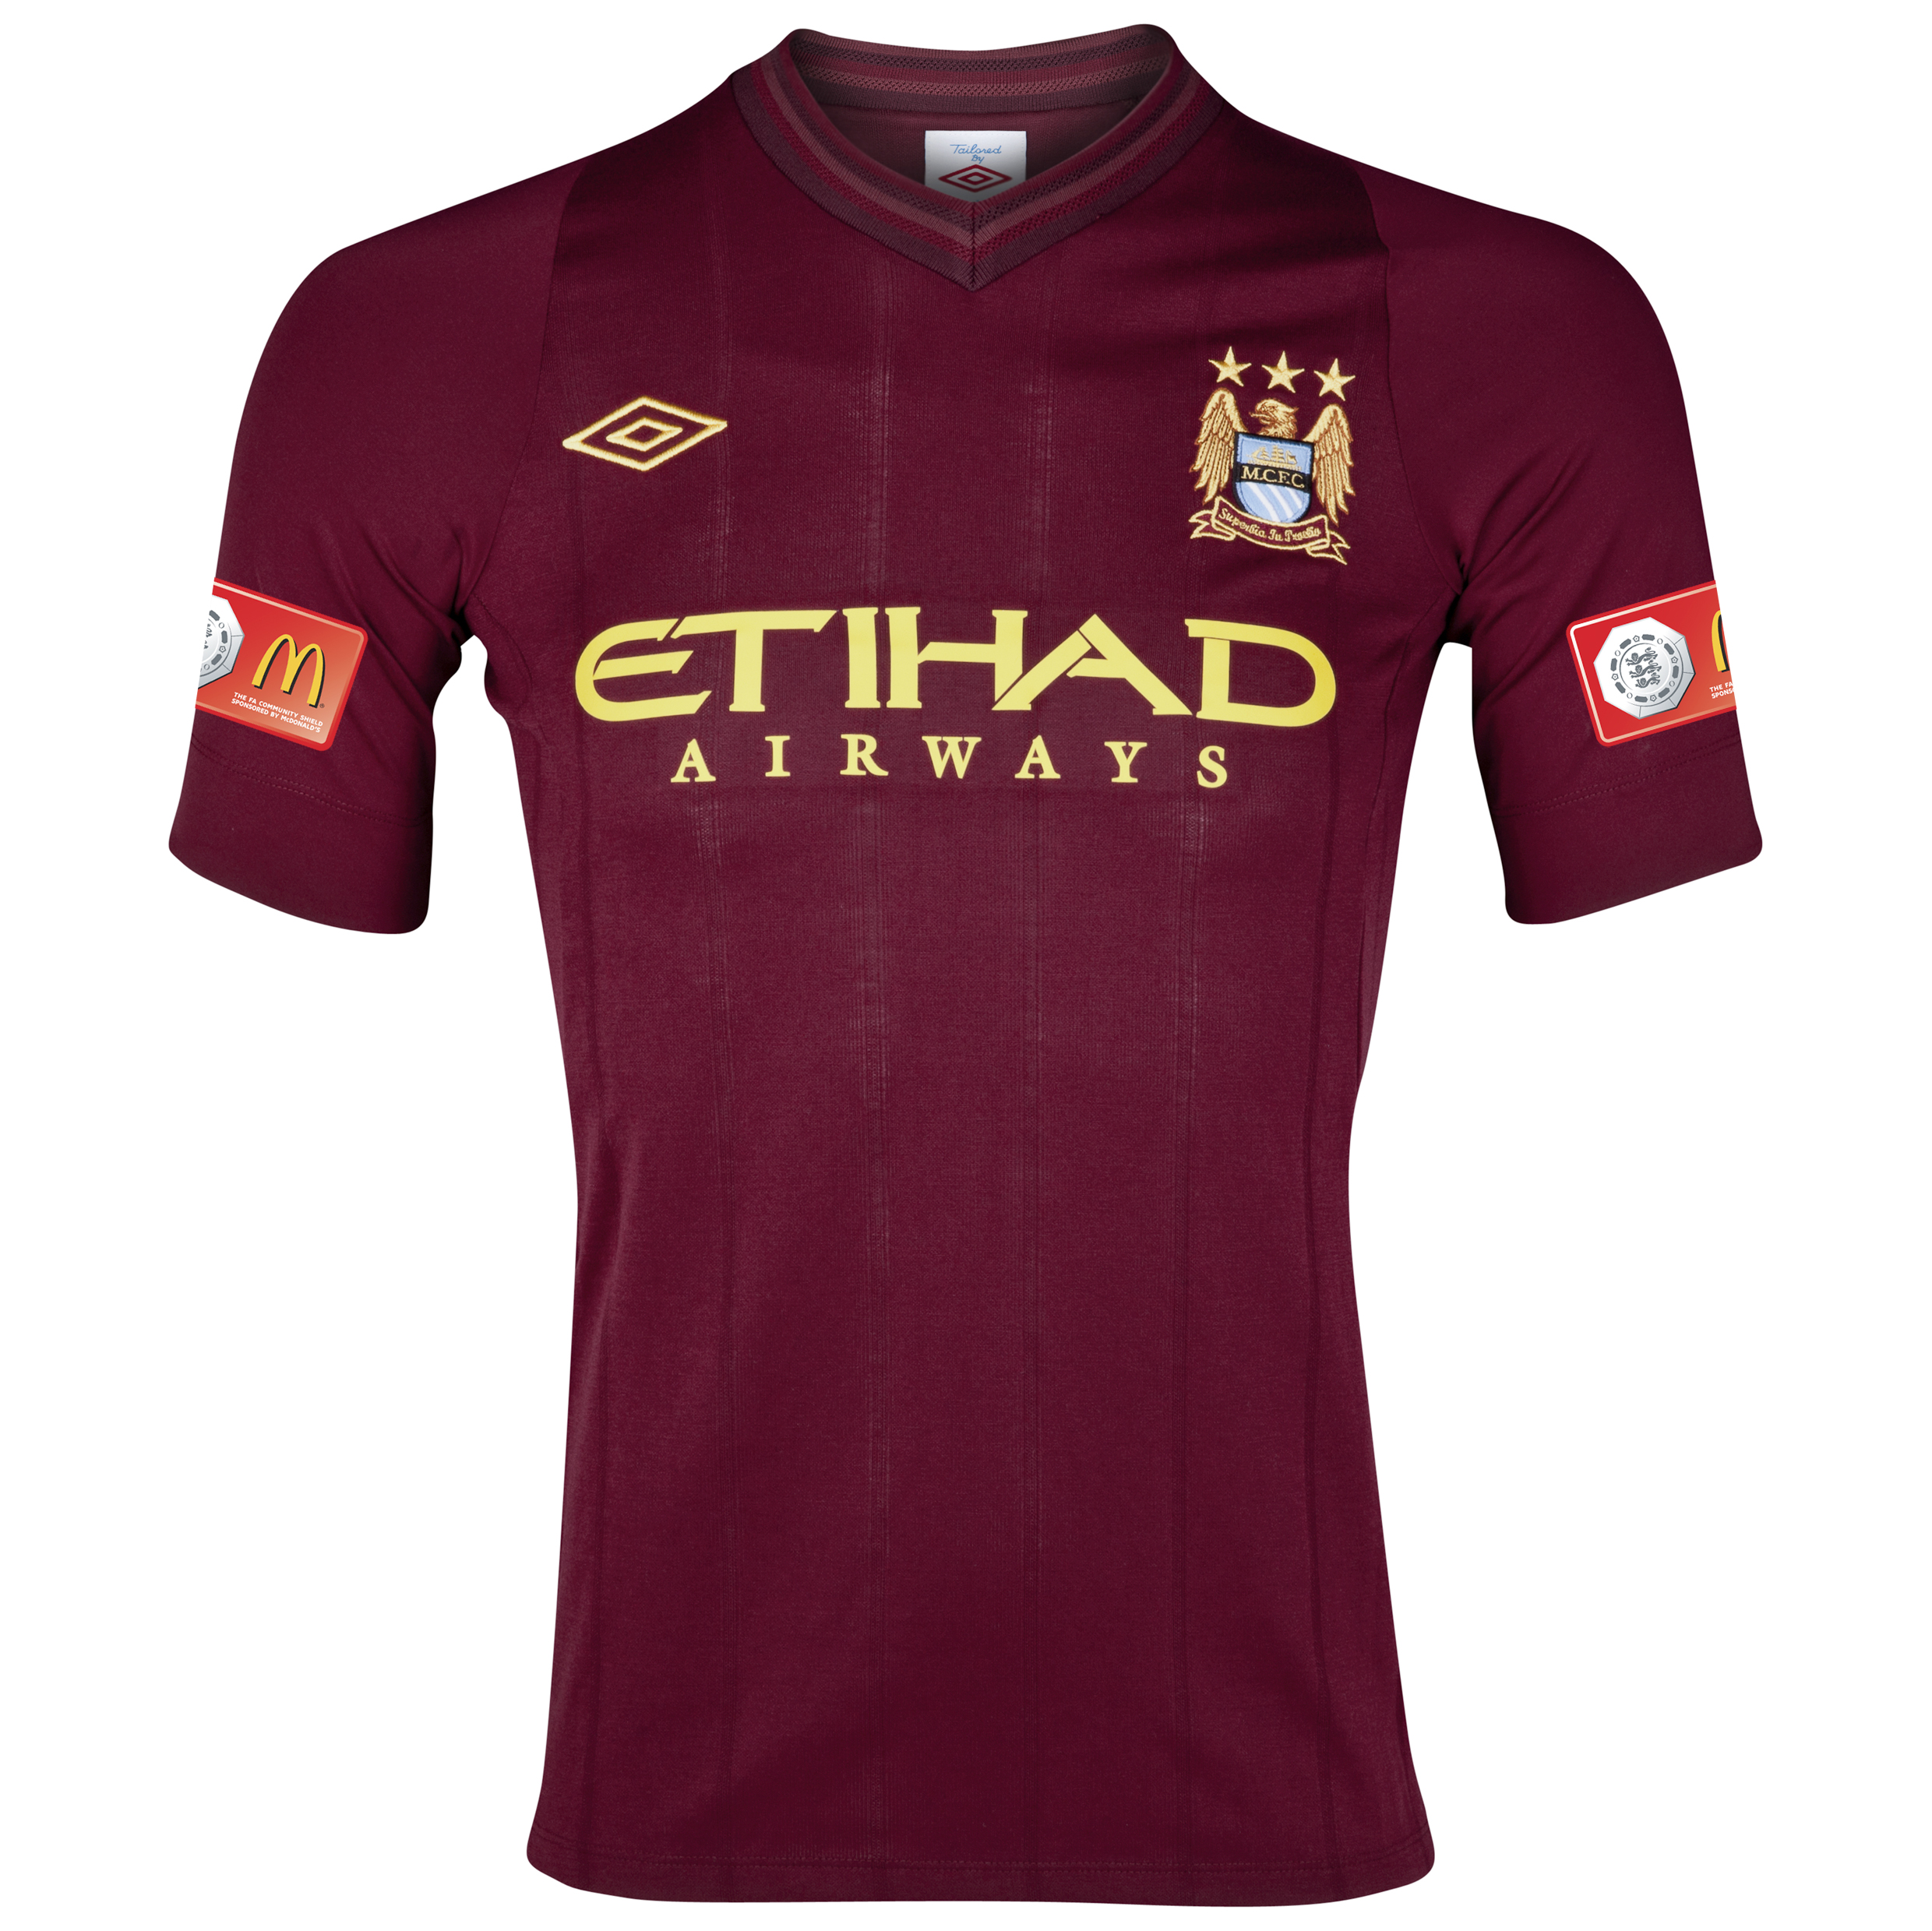 Manchester City Away Shirt 2012/13 Including FA Community Shield Badge